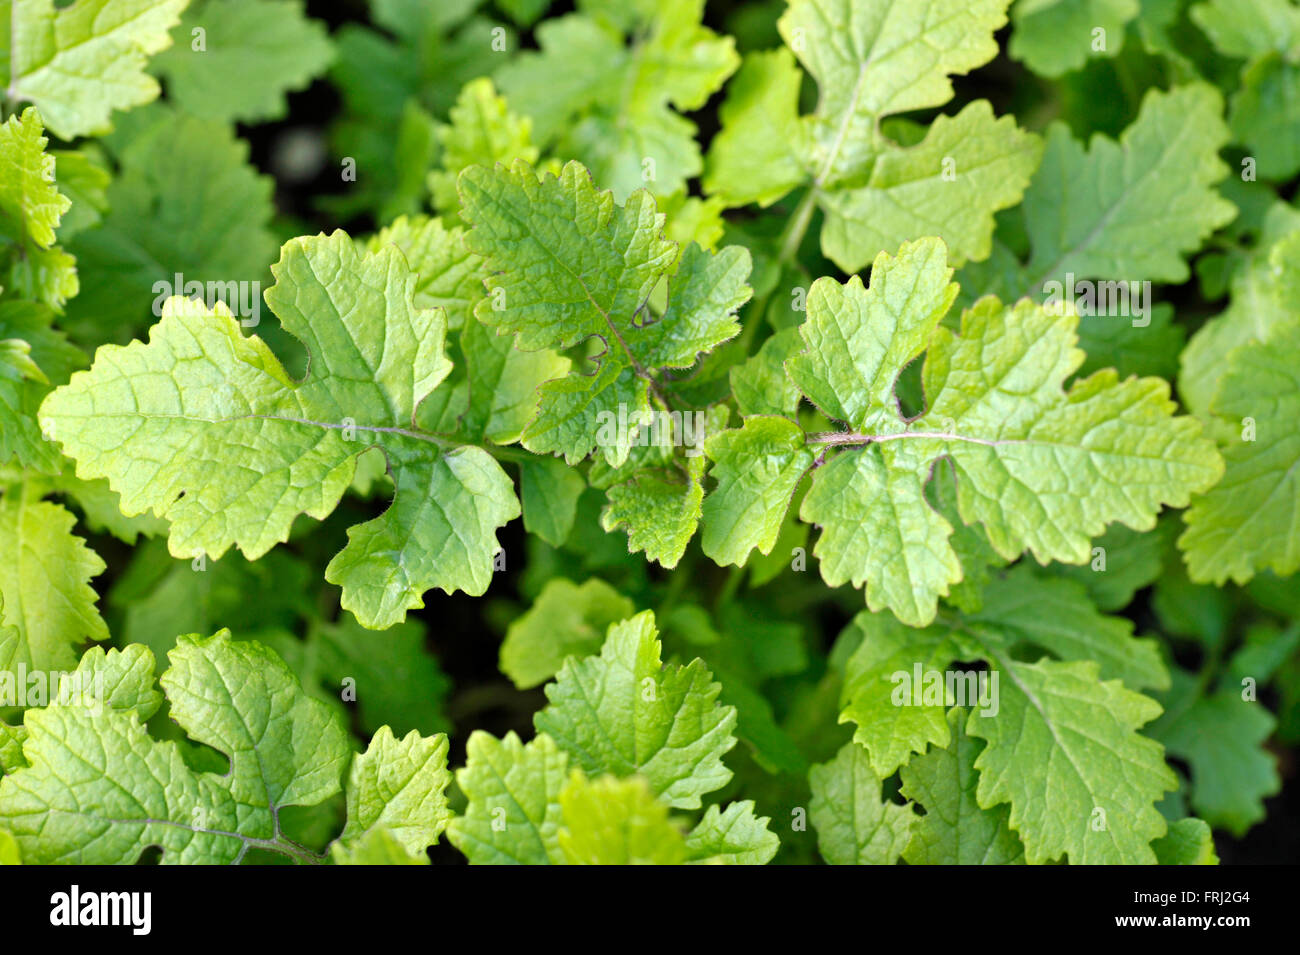 Mustard plants growing, sinapis alba, Brassica Alba or Brassica Hirta, grown for seed or leaves used as a cooking - Stock Image